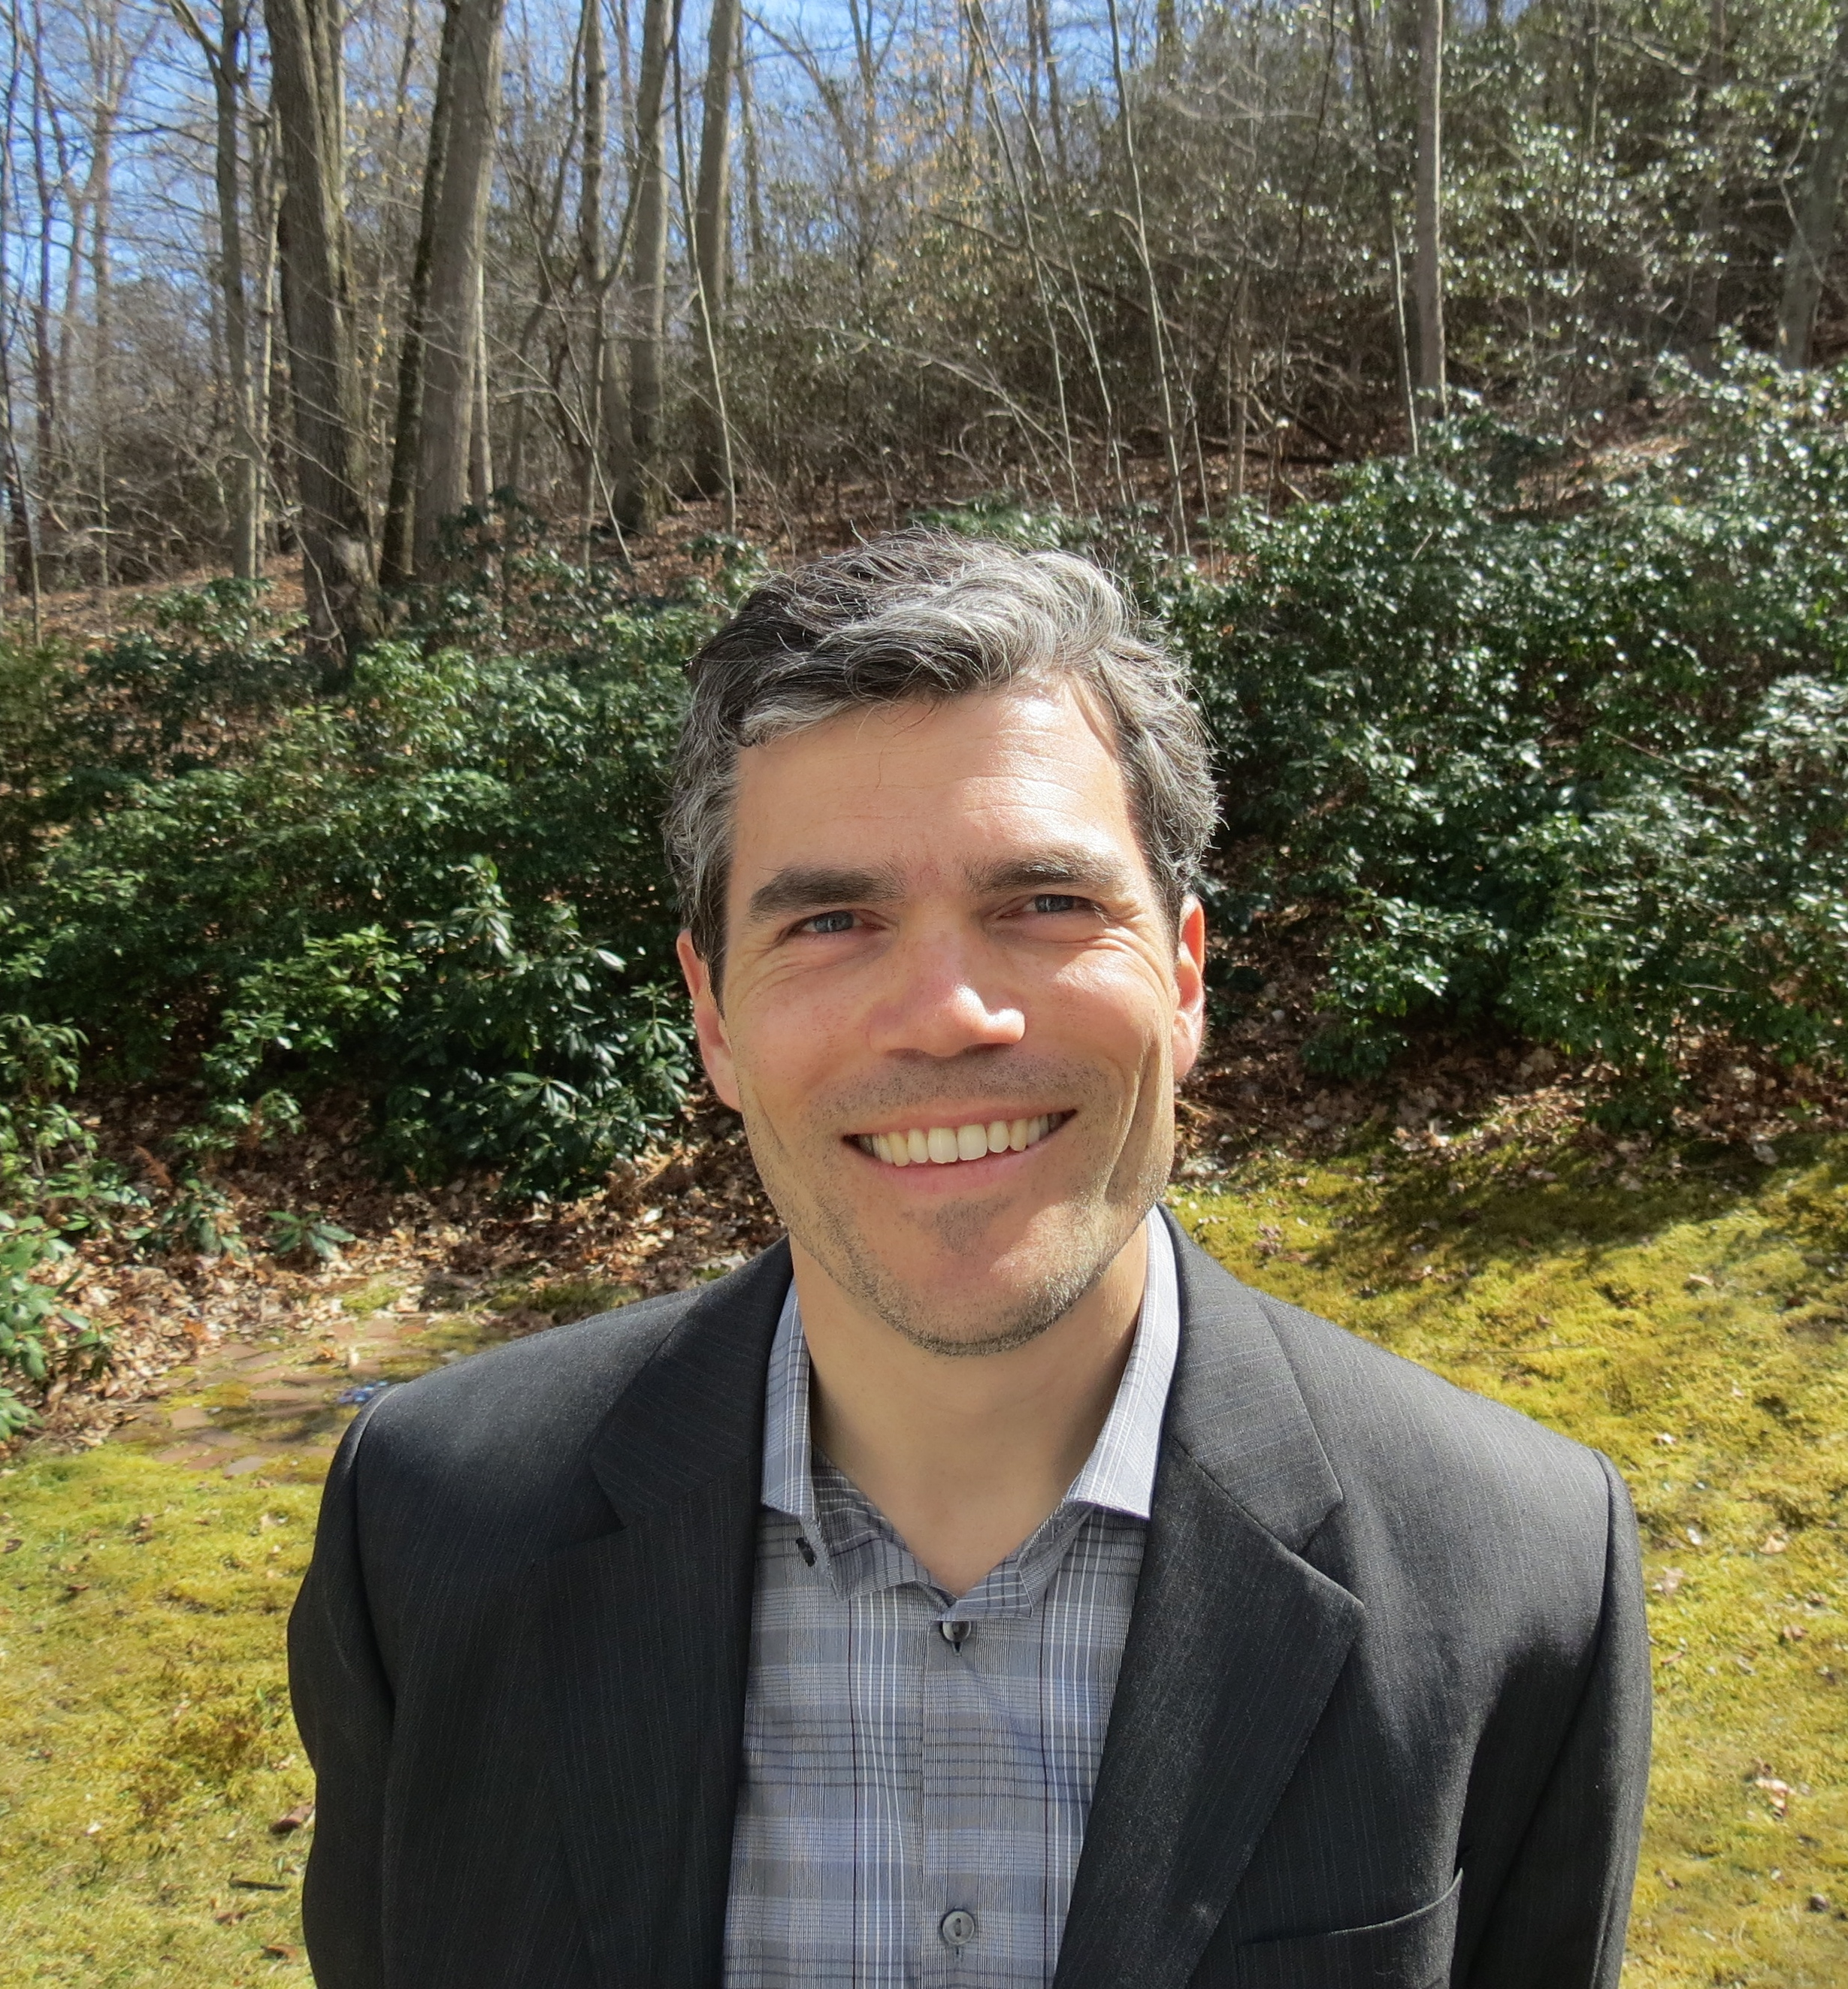 Derek Turner, Professor of Philosophy, Associate Director of the Goodwin-Niering Center for the Environment